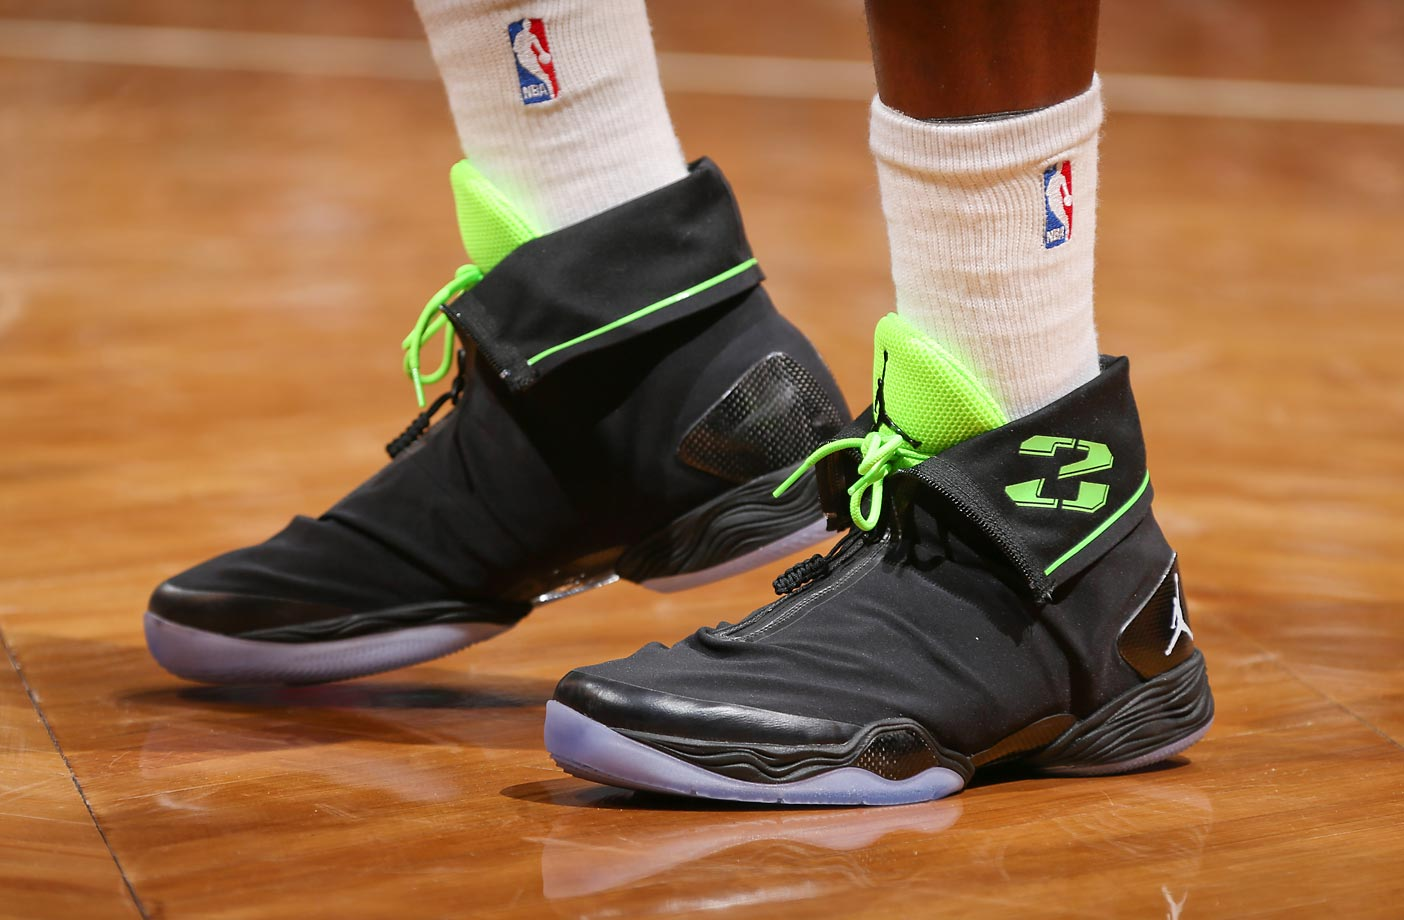 A detail of the Nike Air Jordan XX8 sneakers worn by Joe Johnson of the Brooklyn Nets during a game against the Atlanta Hawks on March 17, 2013.